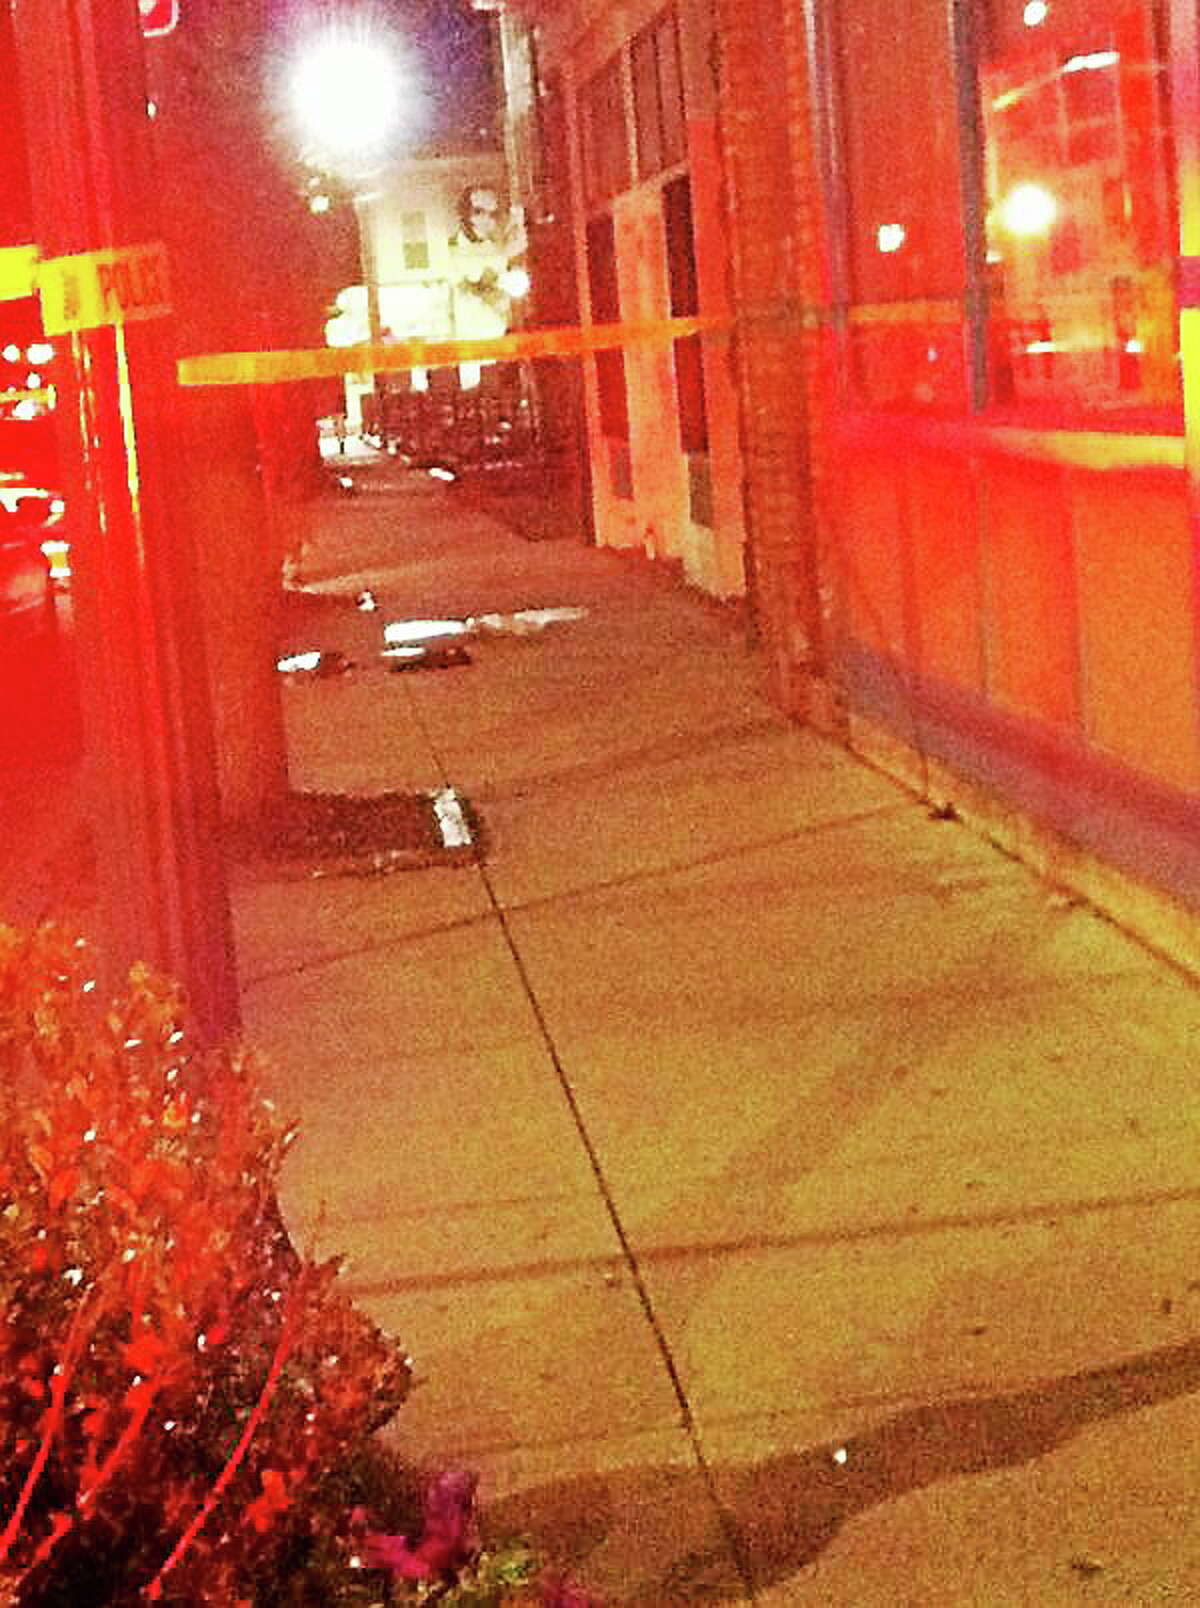 Scene of the fatal shooting Friday night in New Haven.